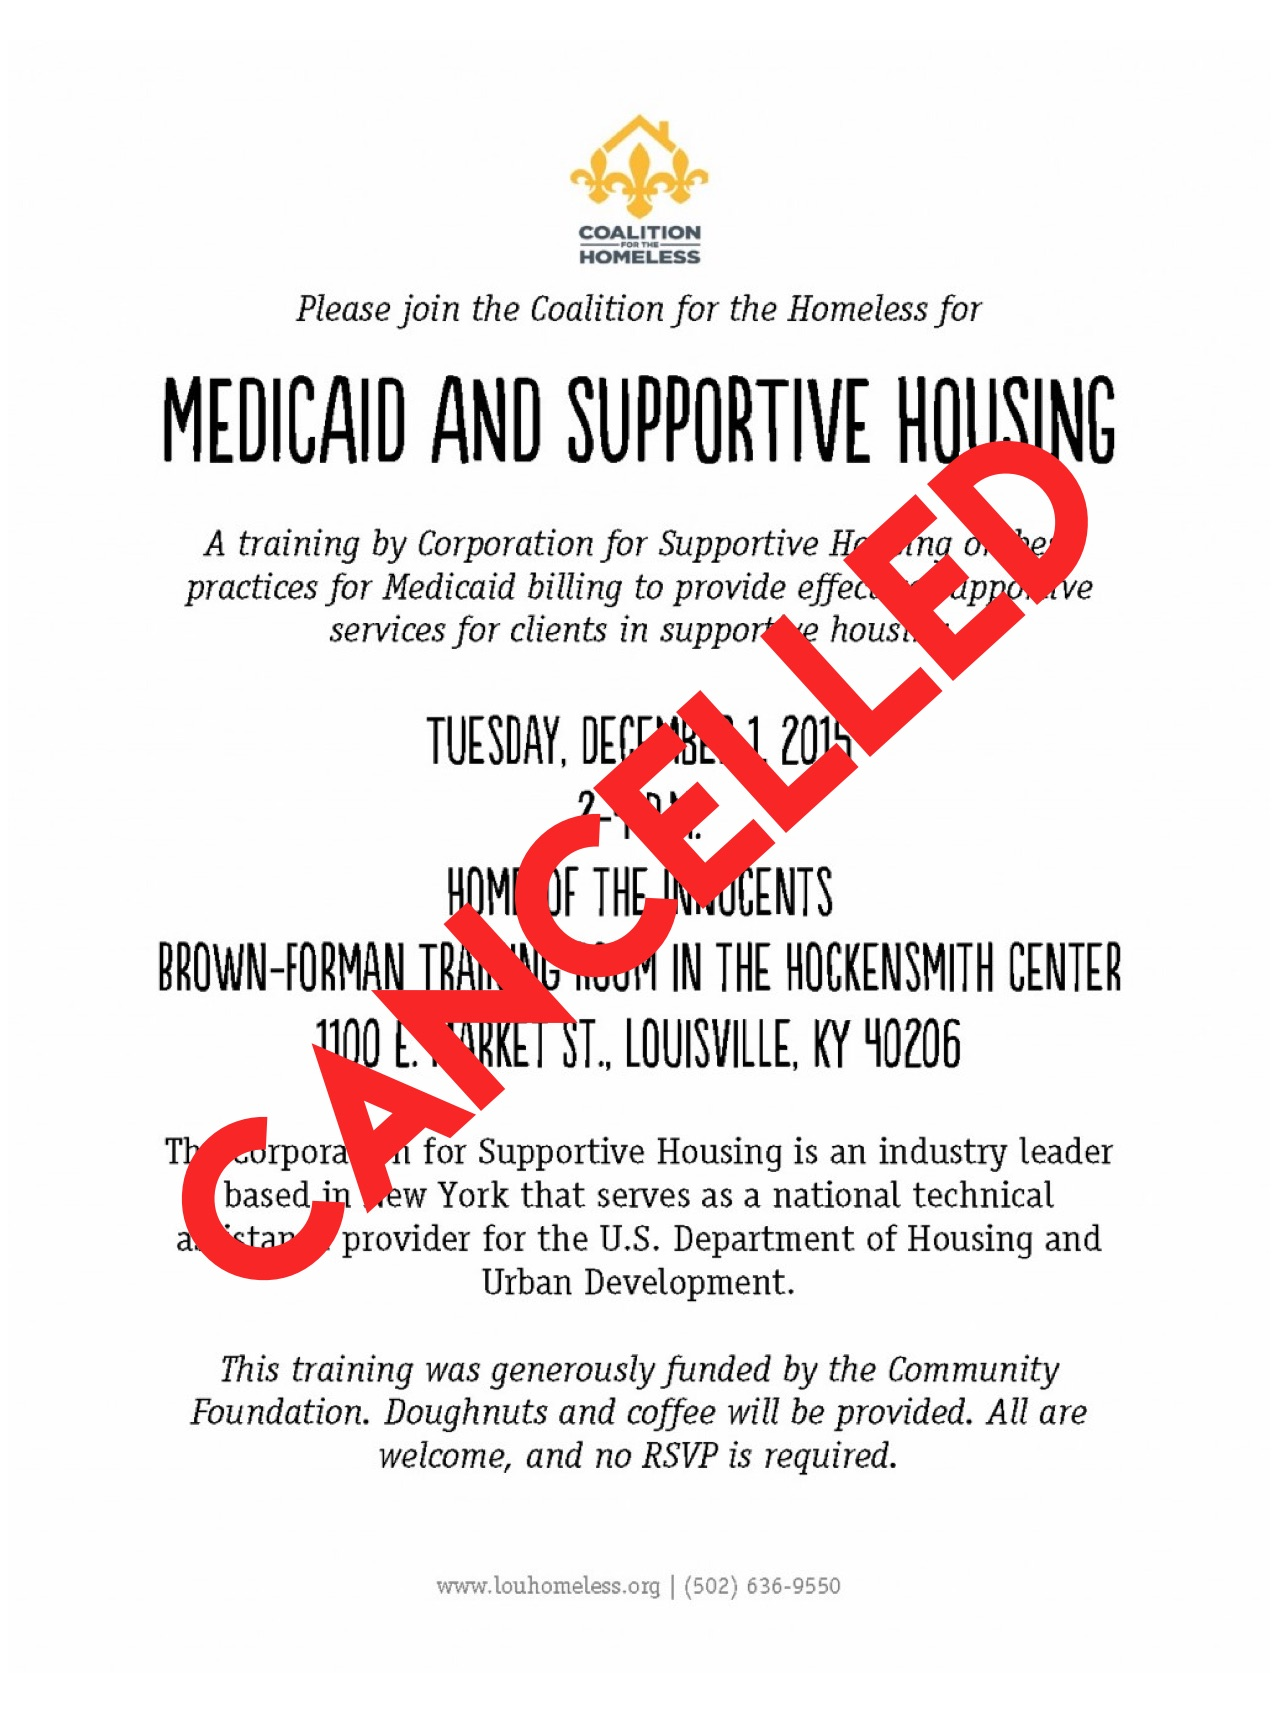 Cancelled Medicaid and Supportive Housing session